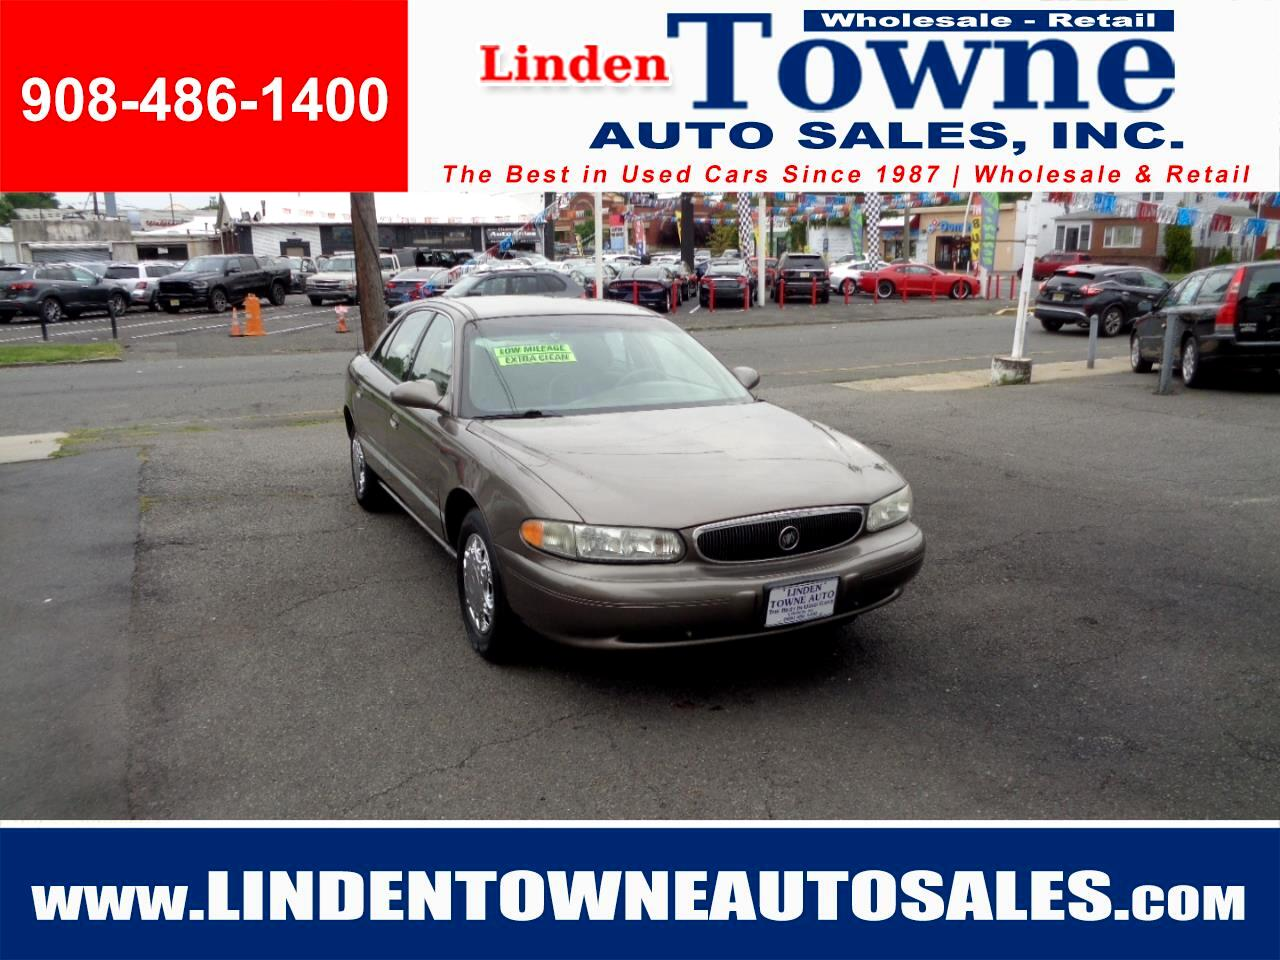 Towne Auto Sales >> Used Cars For Sale Linden Nj 07036 Linden Towne Auto Sales Inc